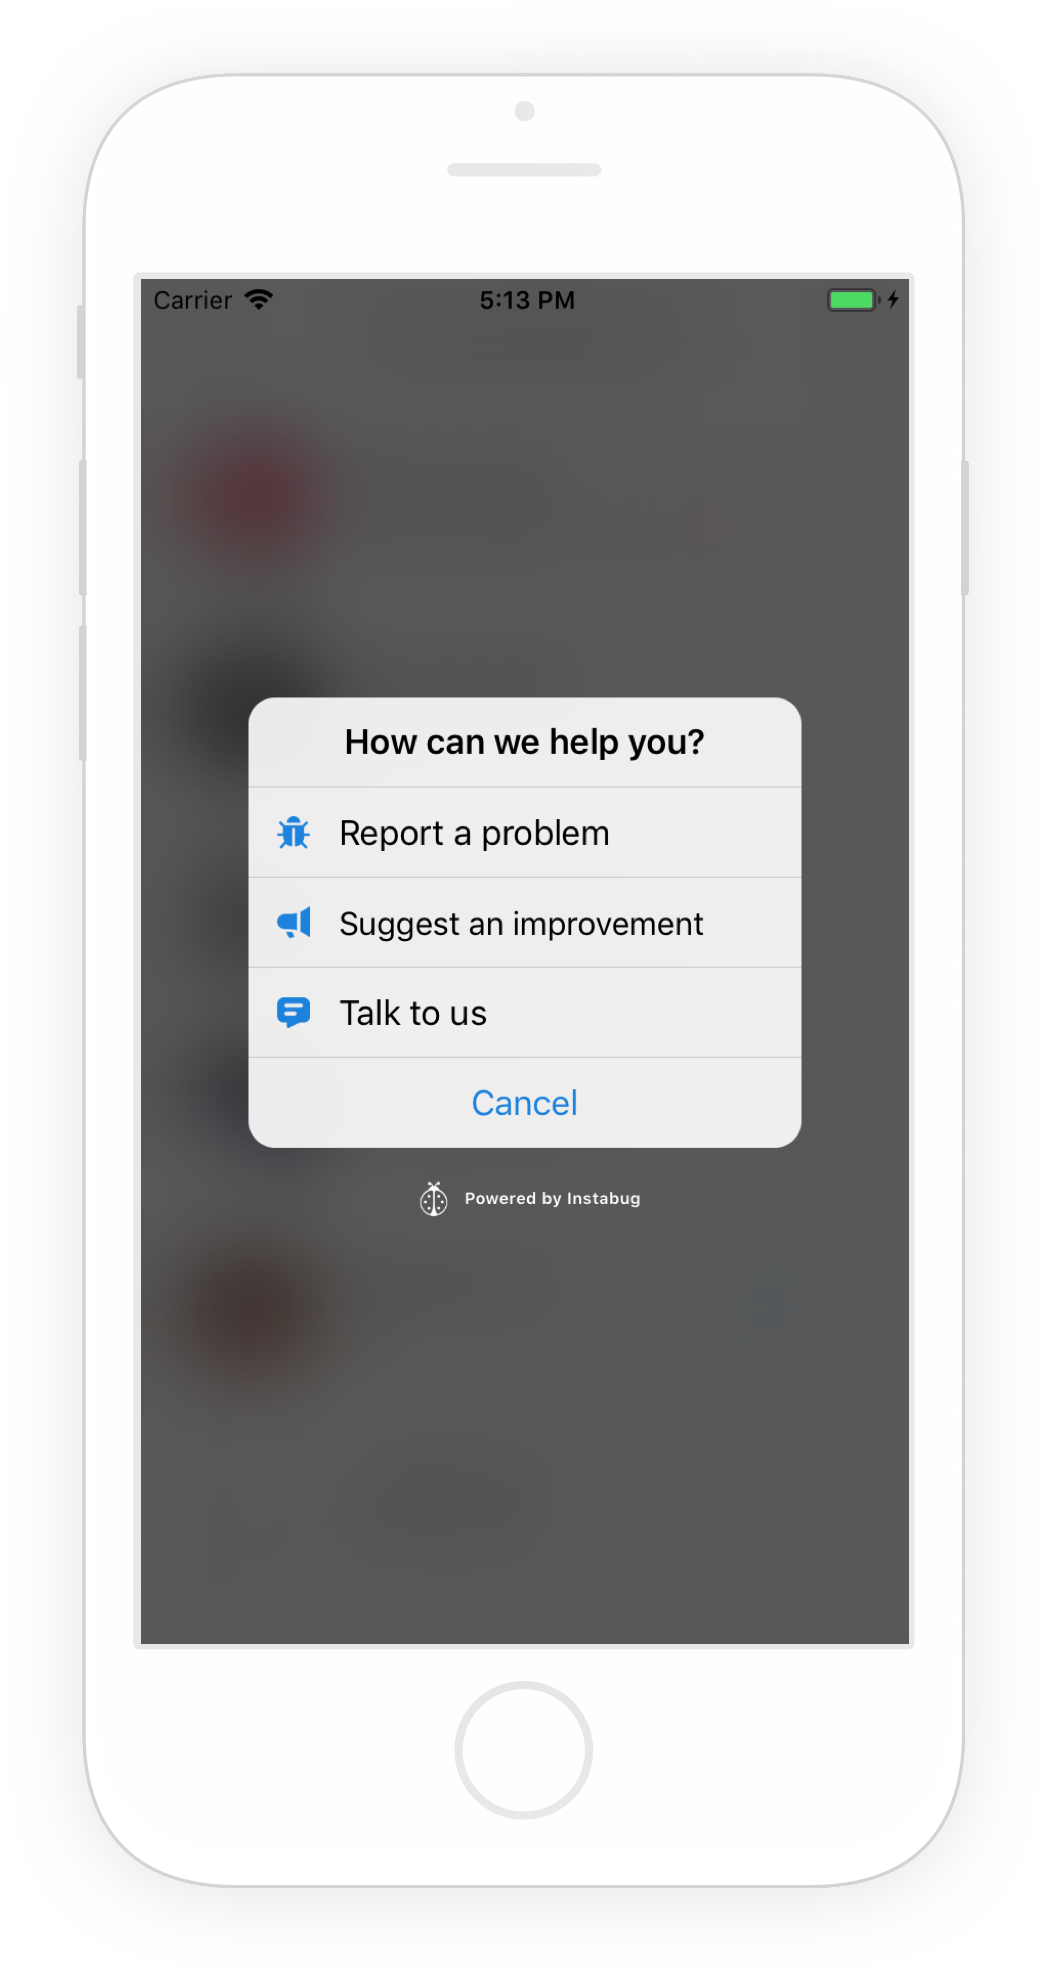 An example of the Prompt Options menu that appears to app users after Instabug is invoked.